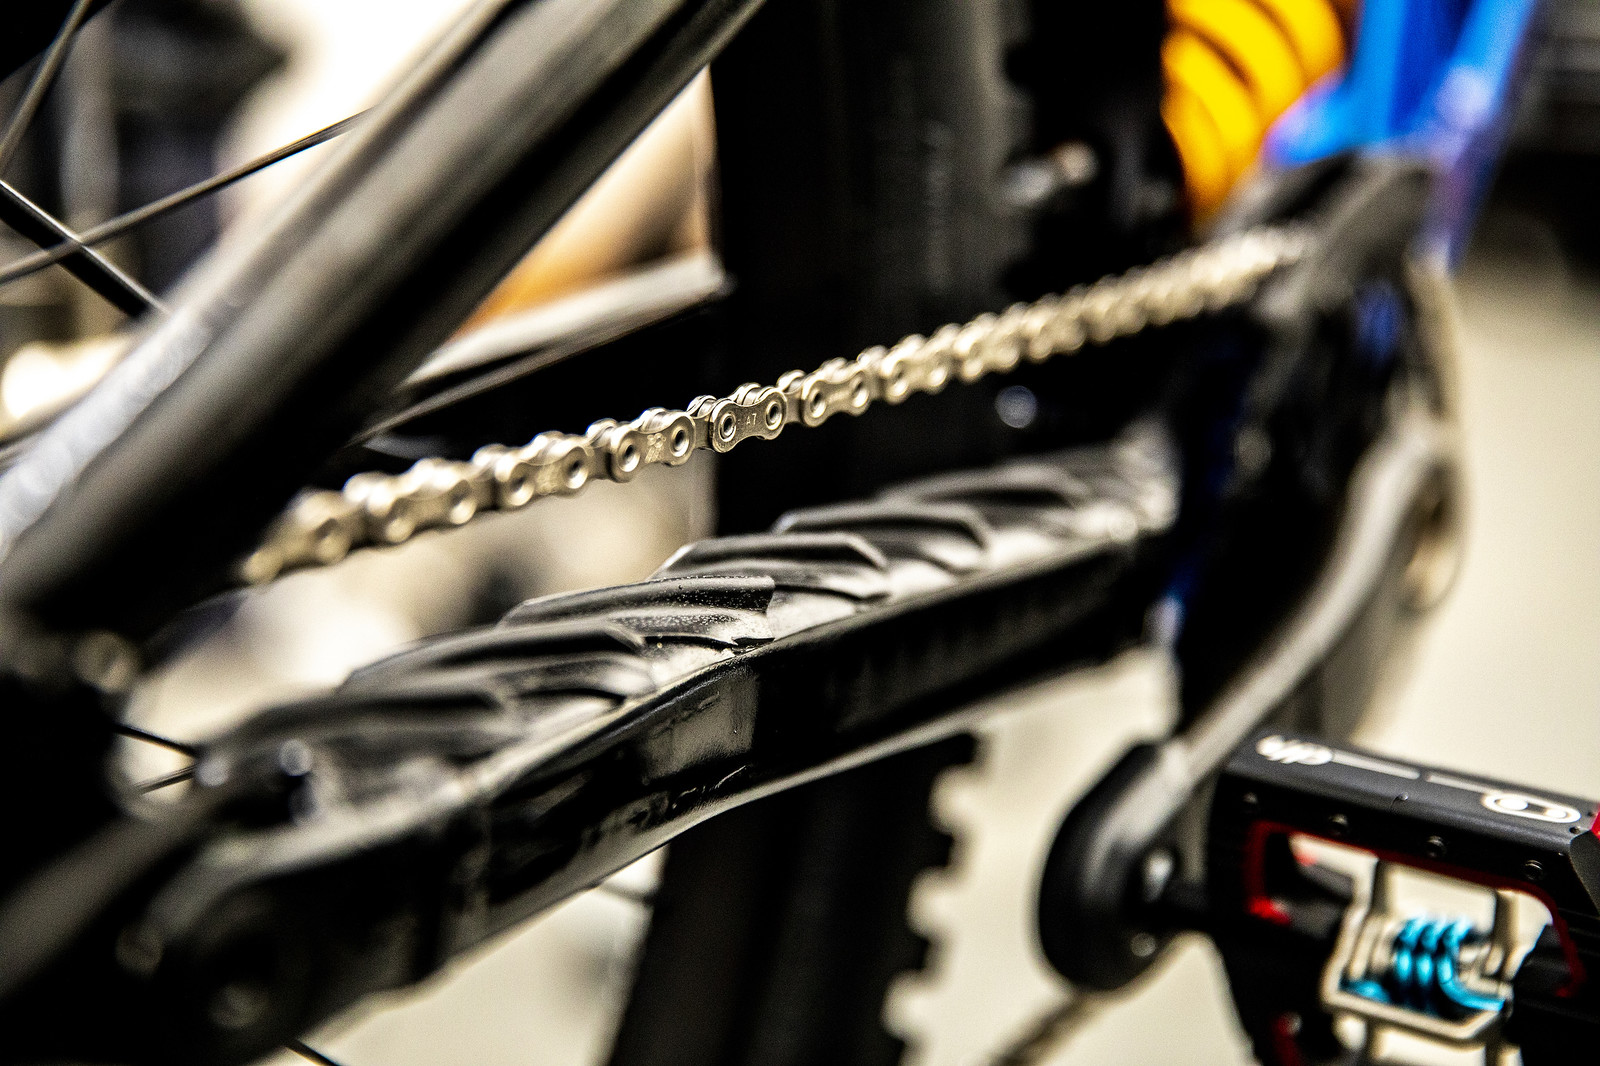 Bruni's chainstay protector.  - PIT BITS - 2019 Lenzerheide World Cup Downhill - Mountain Biking Pictures - Vital MTB